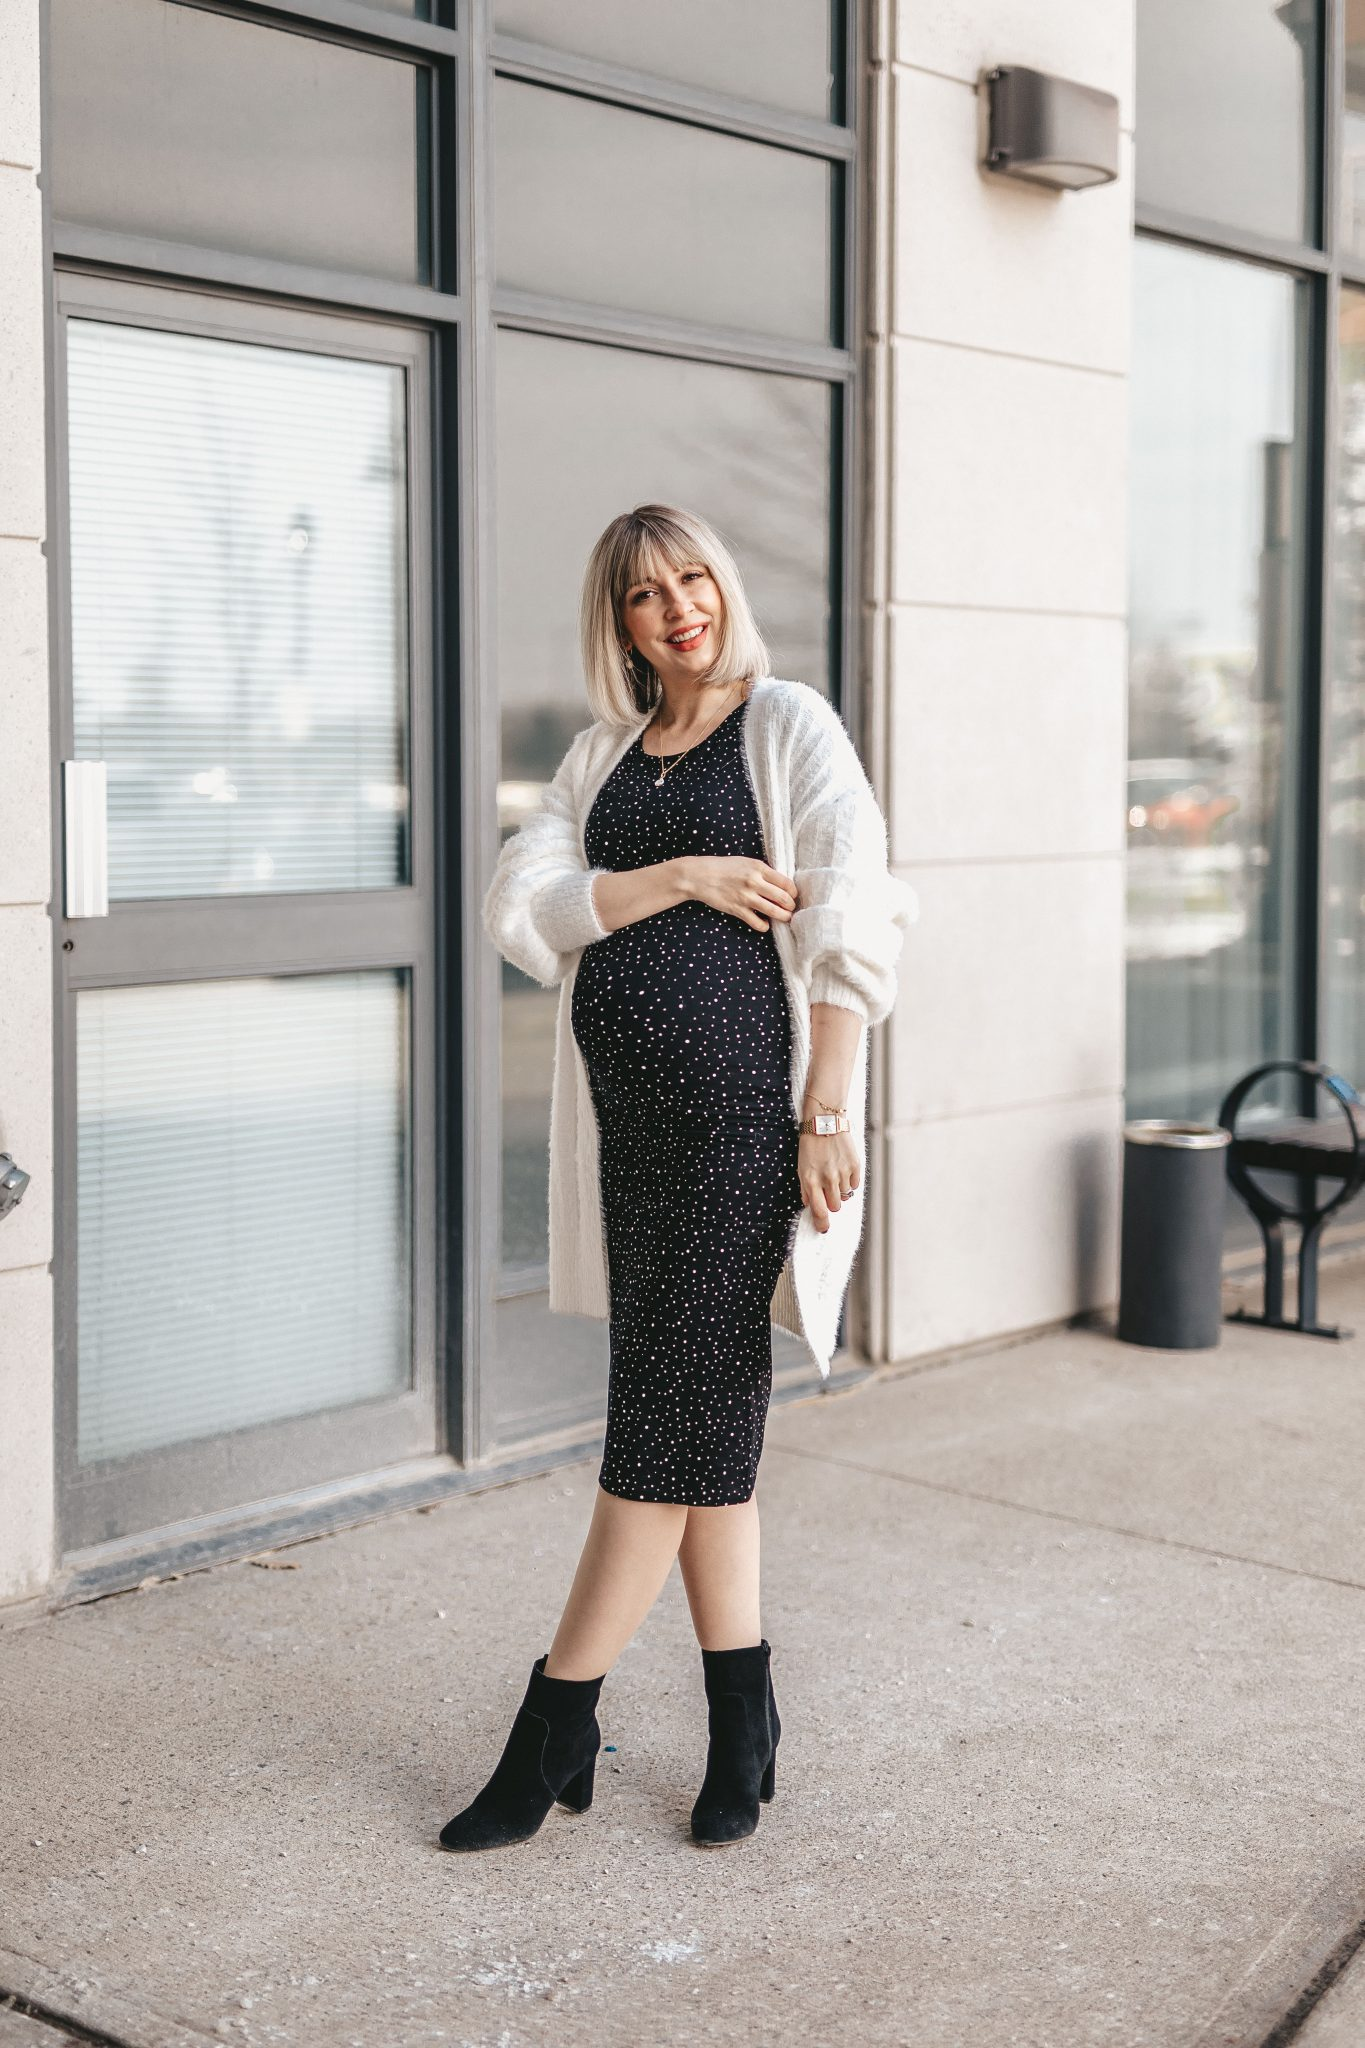 Maternity shirt dress street style NE (6 of 7)